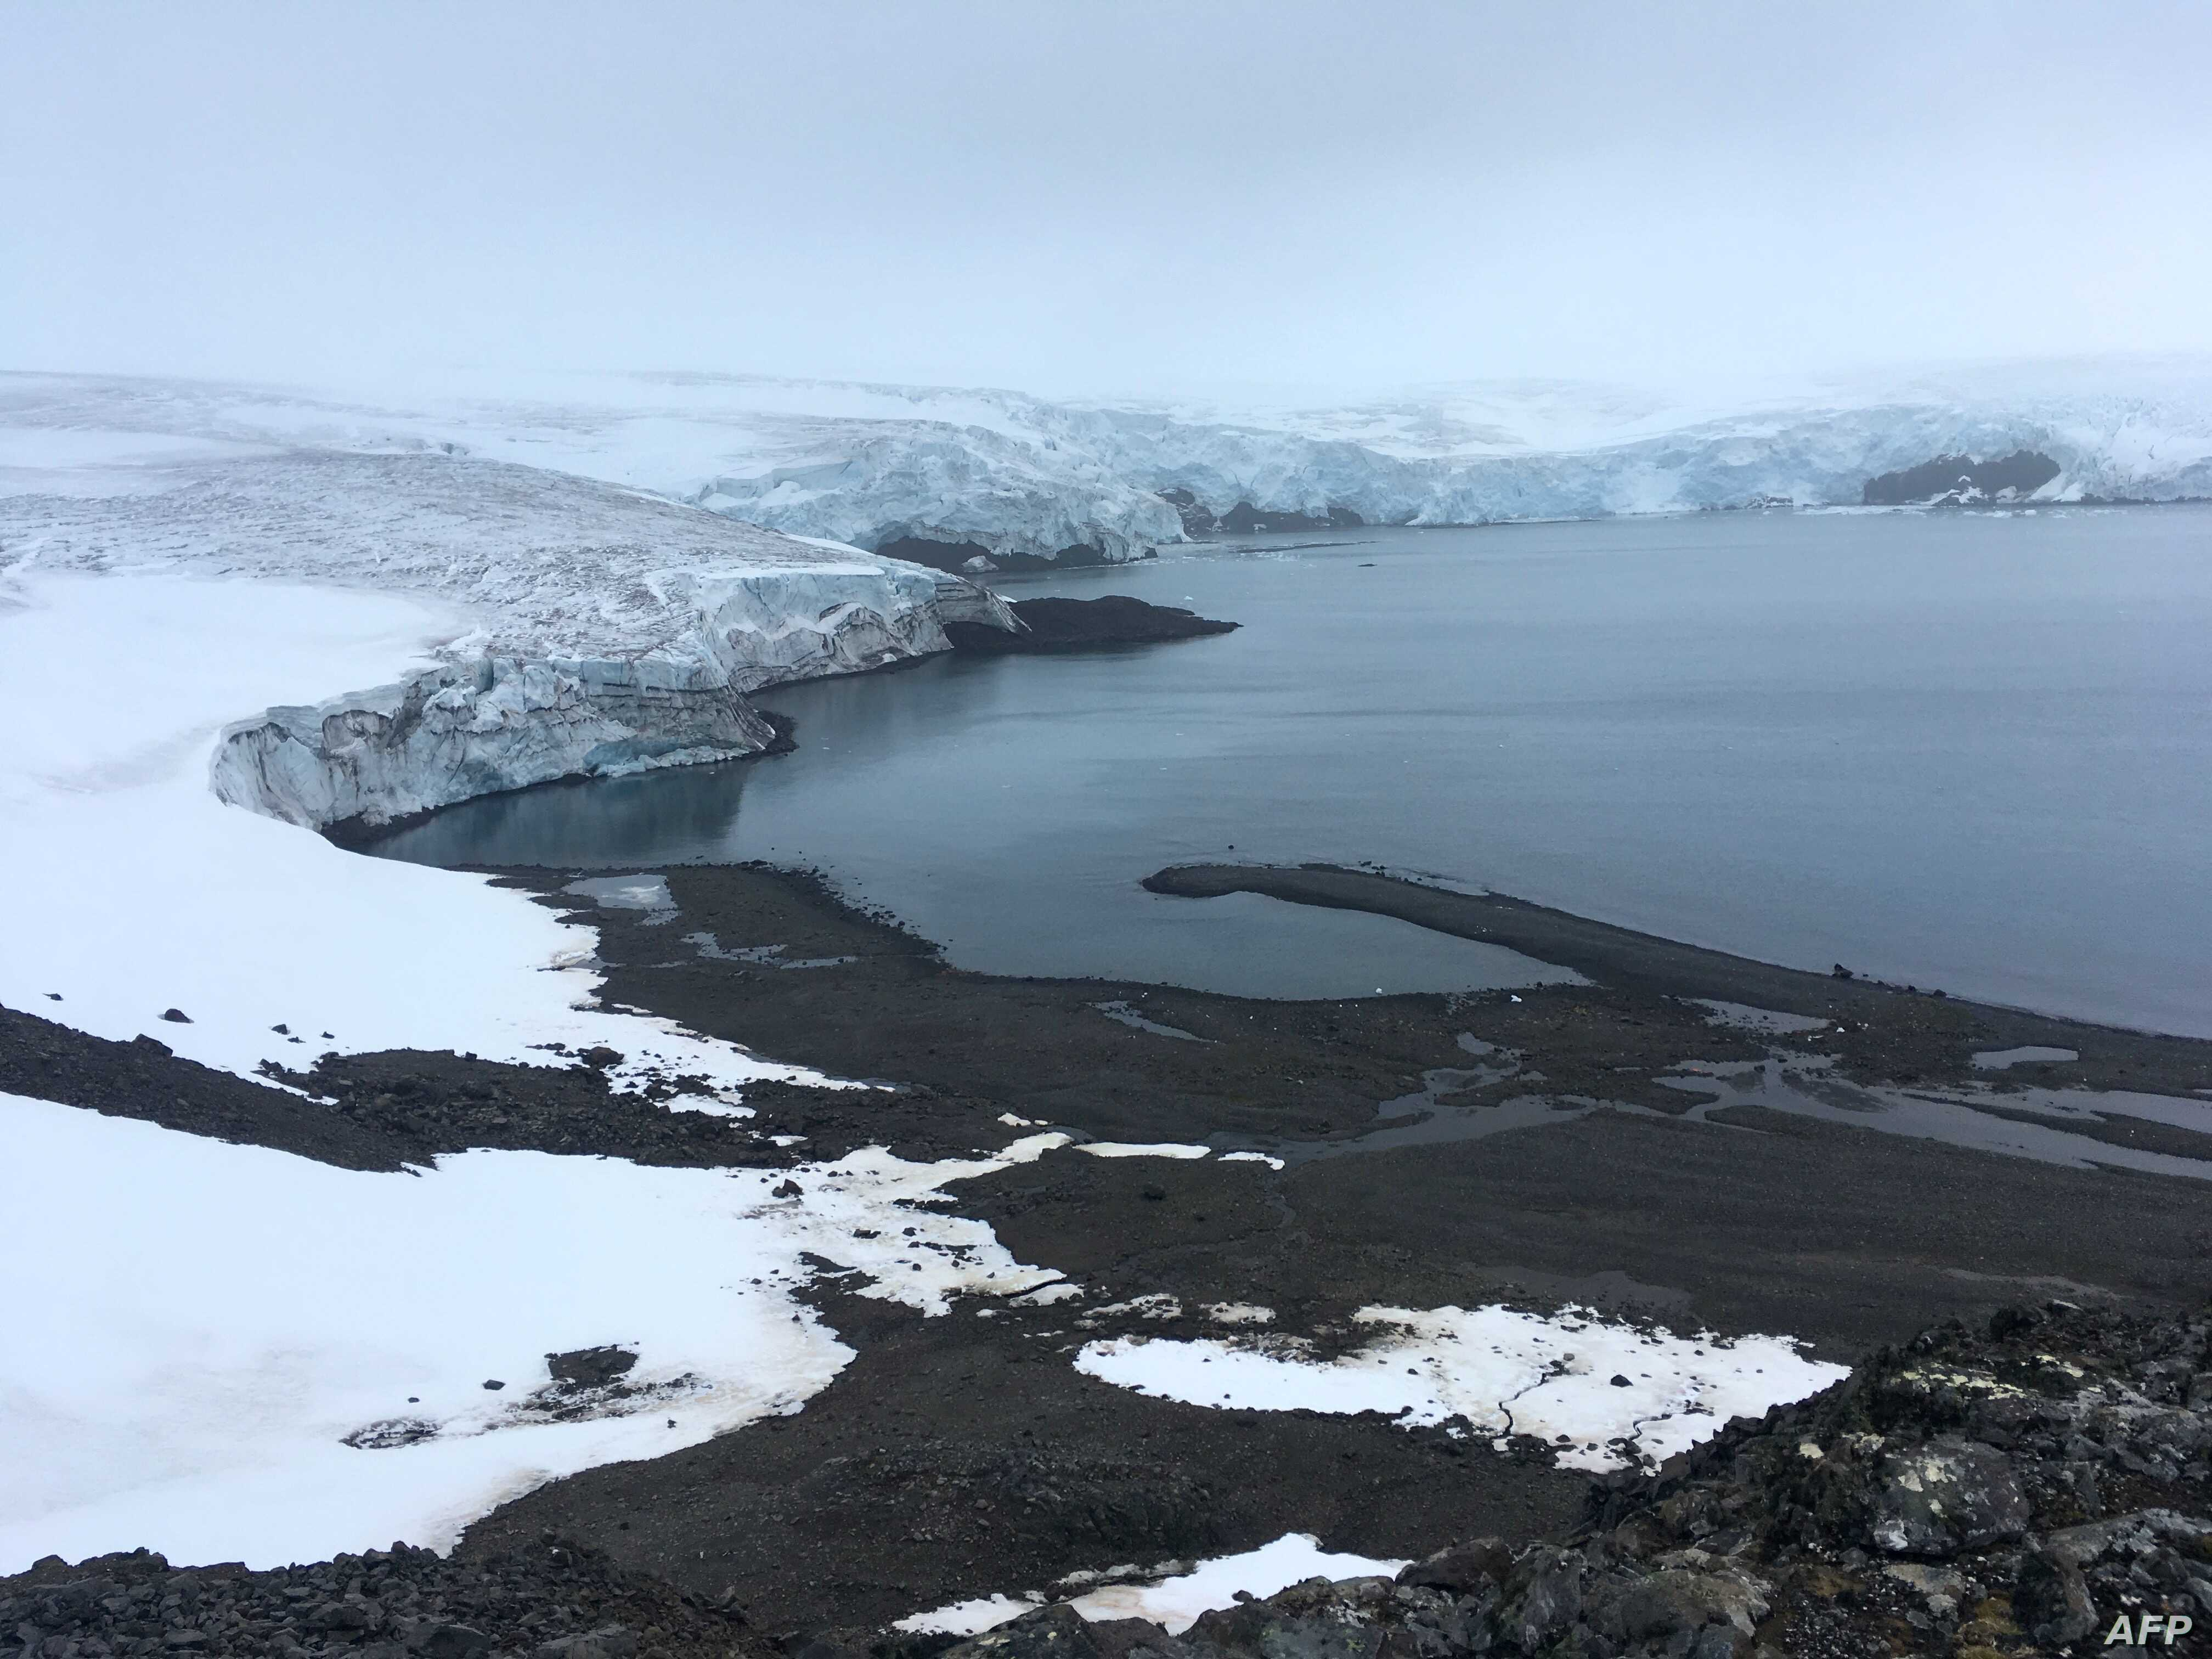 The Collins glacier on King George Island has retreated in the last 10 years and shows signs of fragility, in the Antarctic, Feb. 2, 2018.